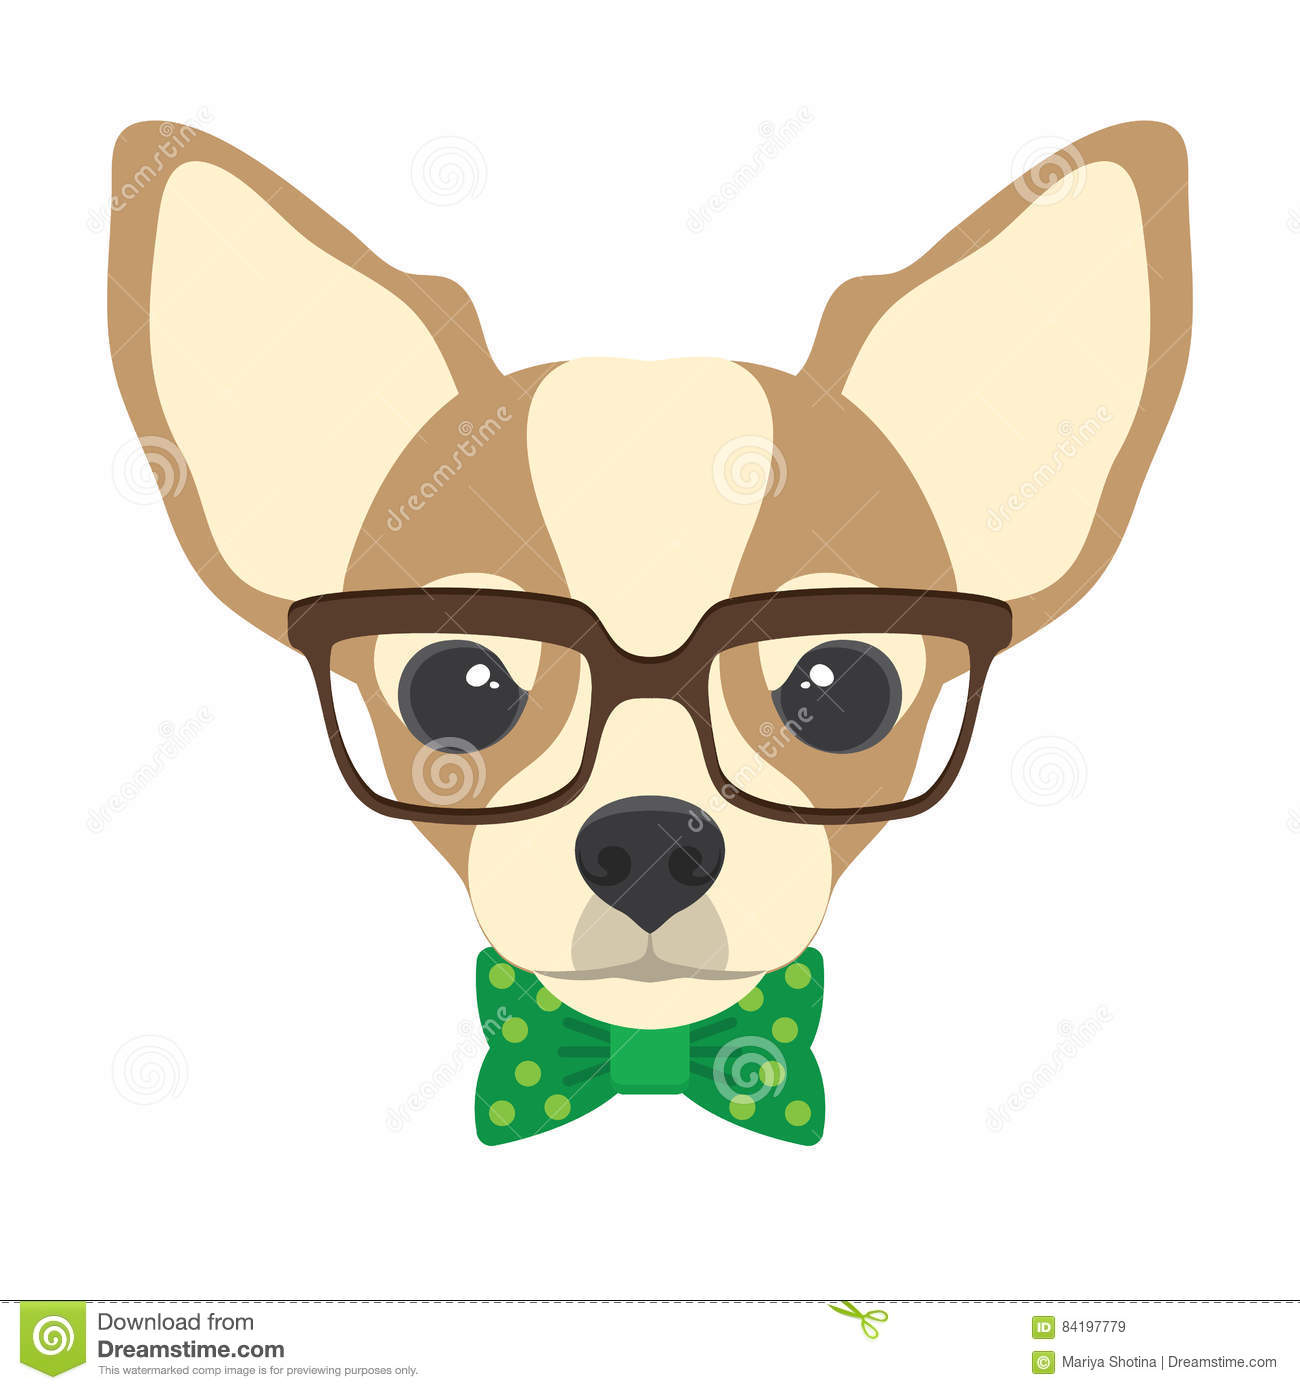 Portrait Of Chihuahua Dog With Glasses And Bow Tie In Flat Styl Stock Vector Illustration Of Cartoon Friendly 84197779